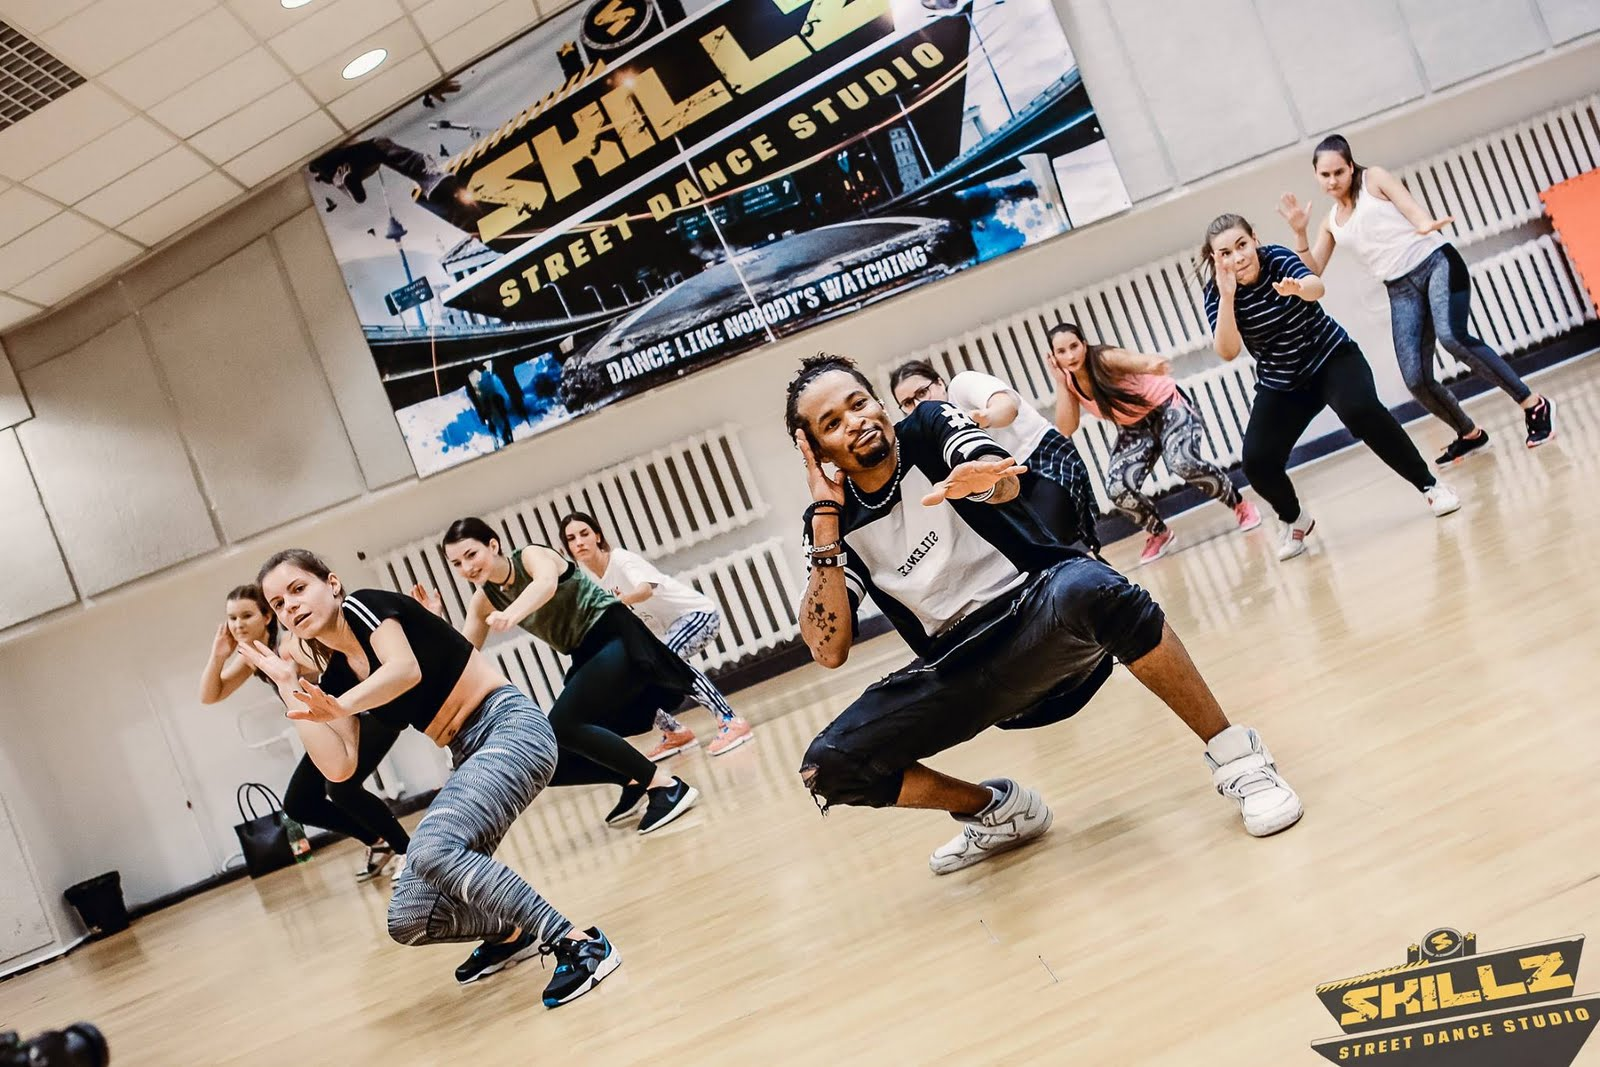 Dancehall workshop with Jiggy (France) - 34.jpg